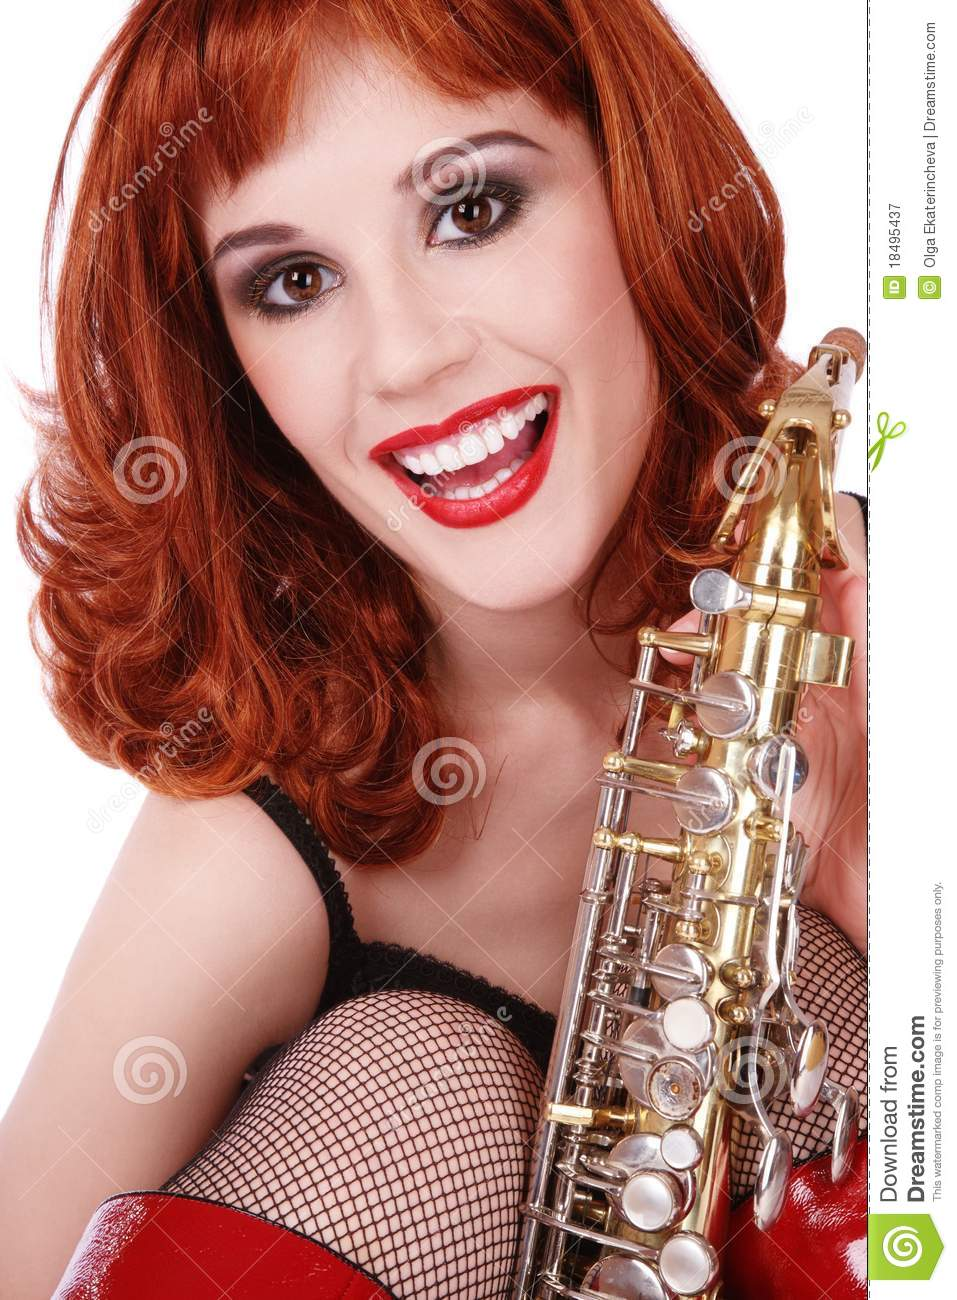 Garl Sax Com girl with sax stock image. image of friendly, excited - 18495437